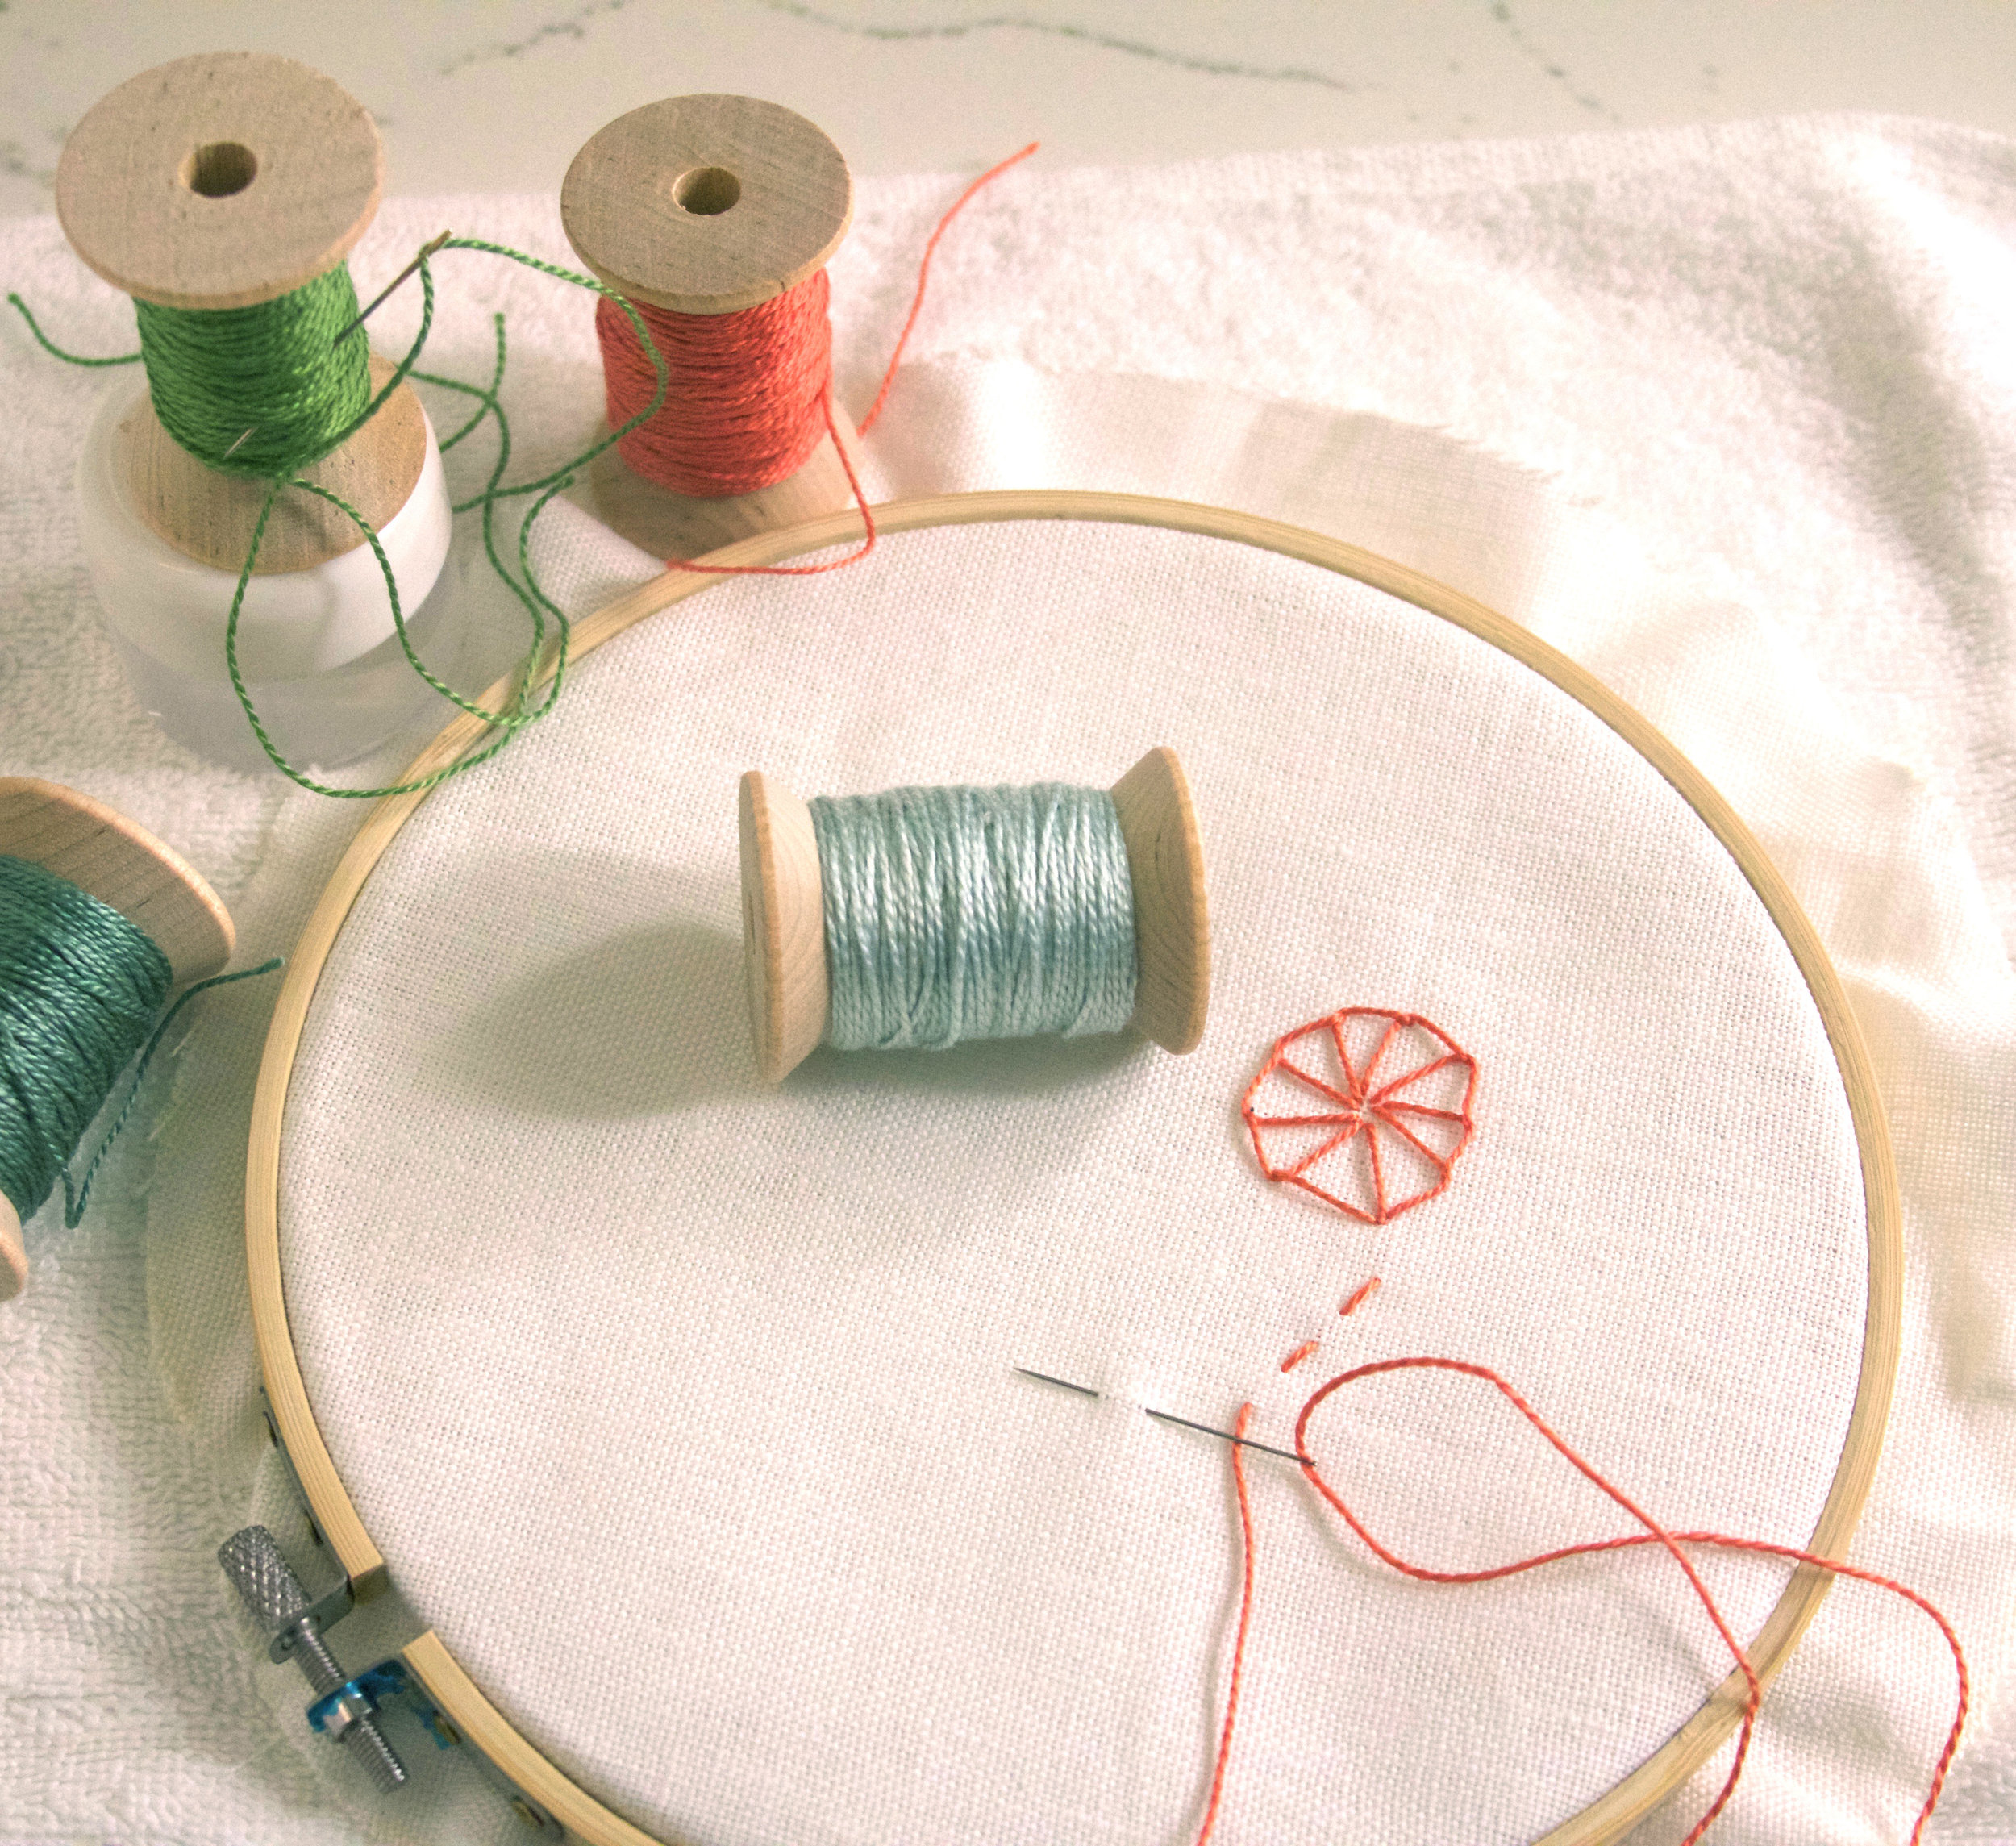 Shop Embroidery Patterns